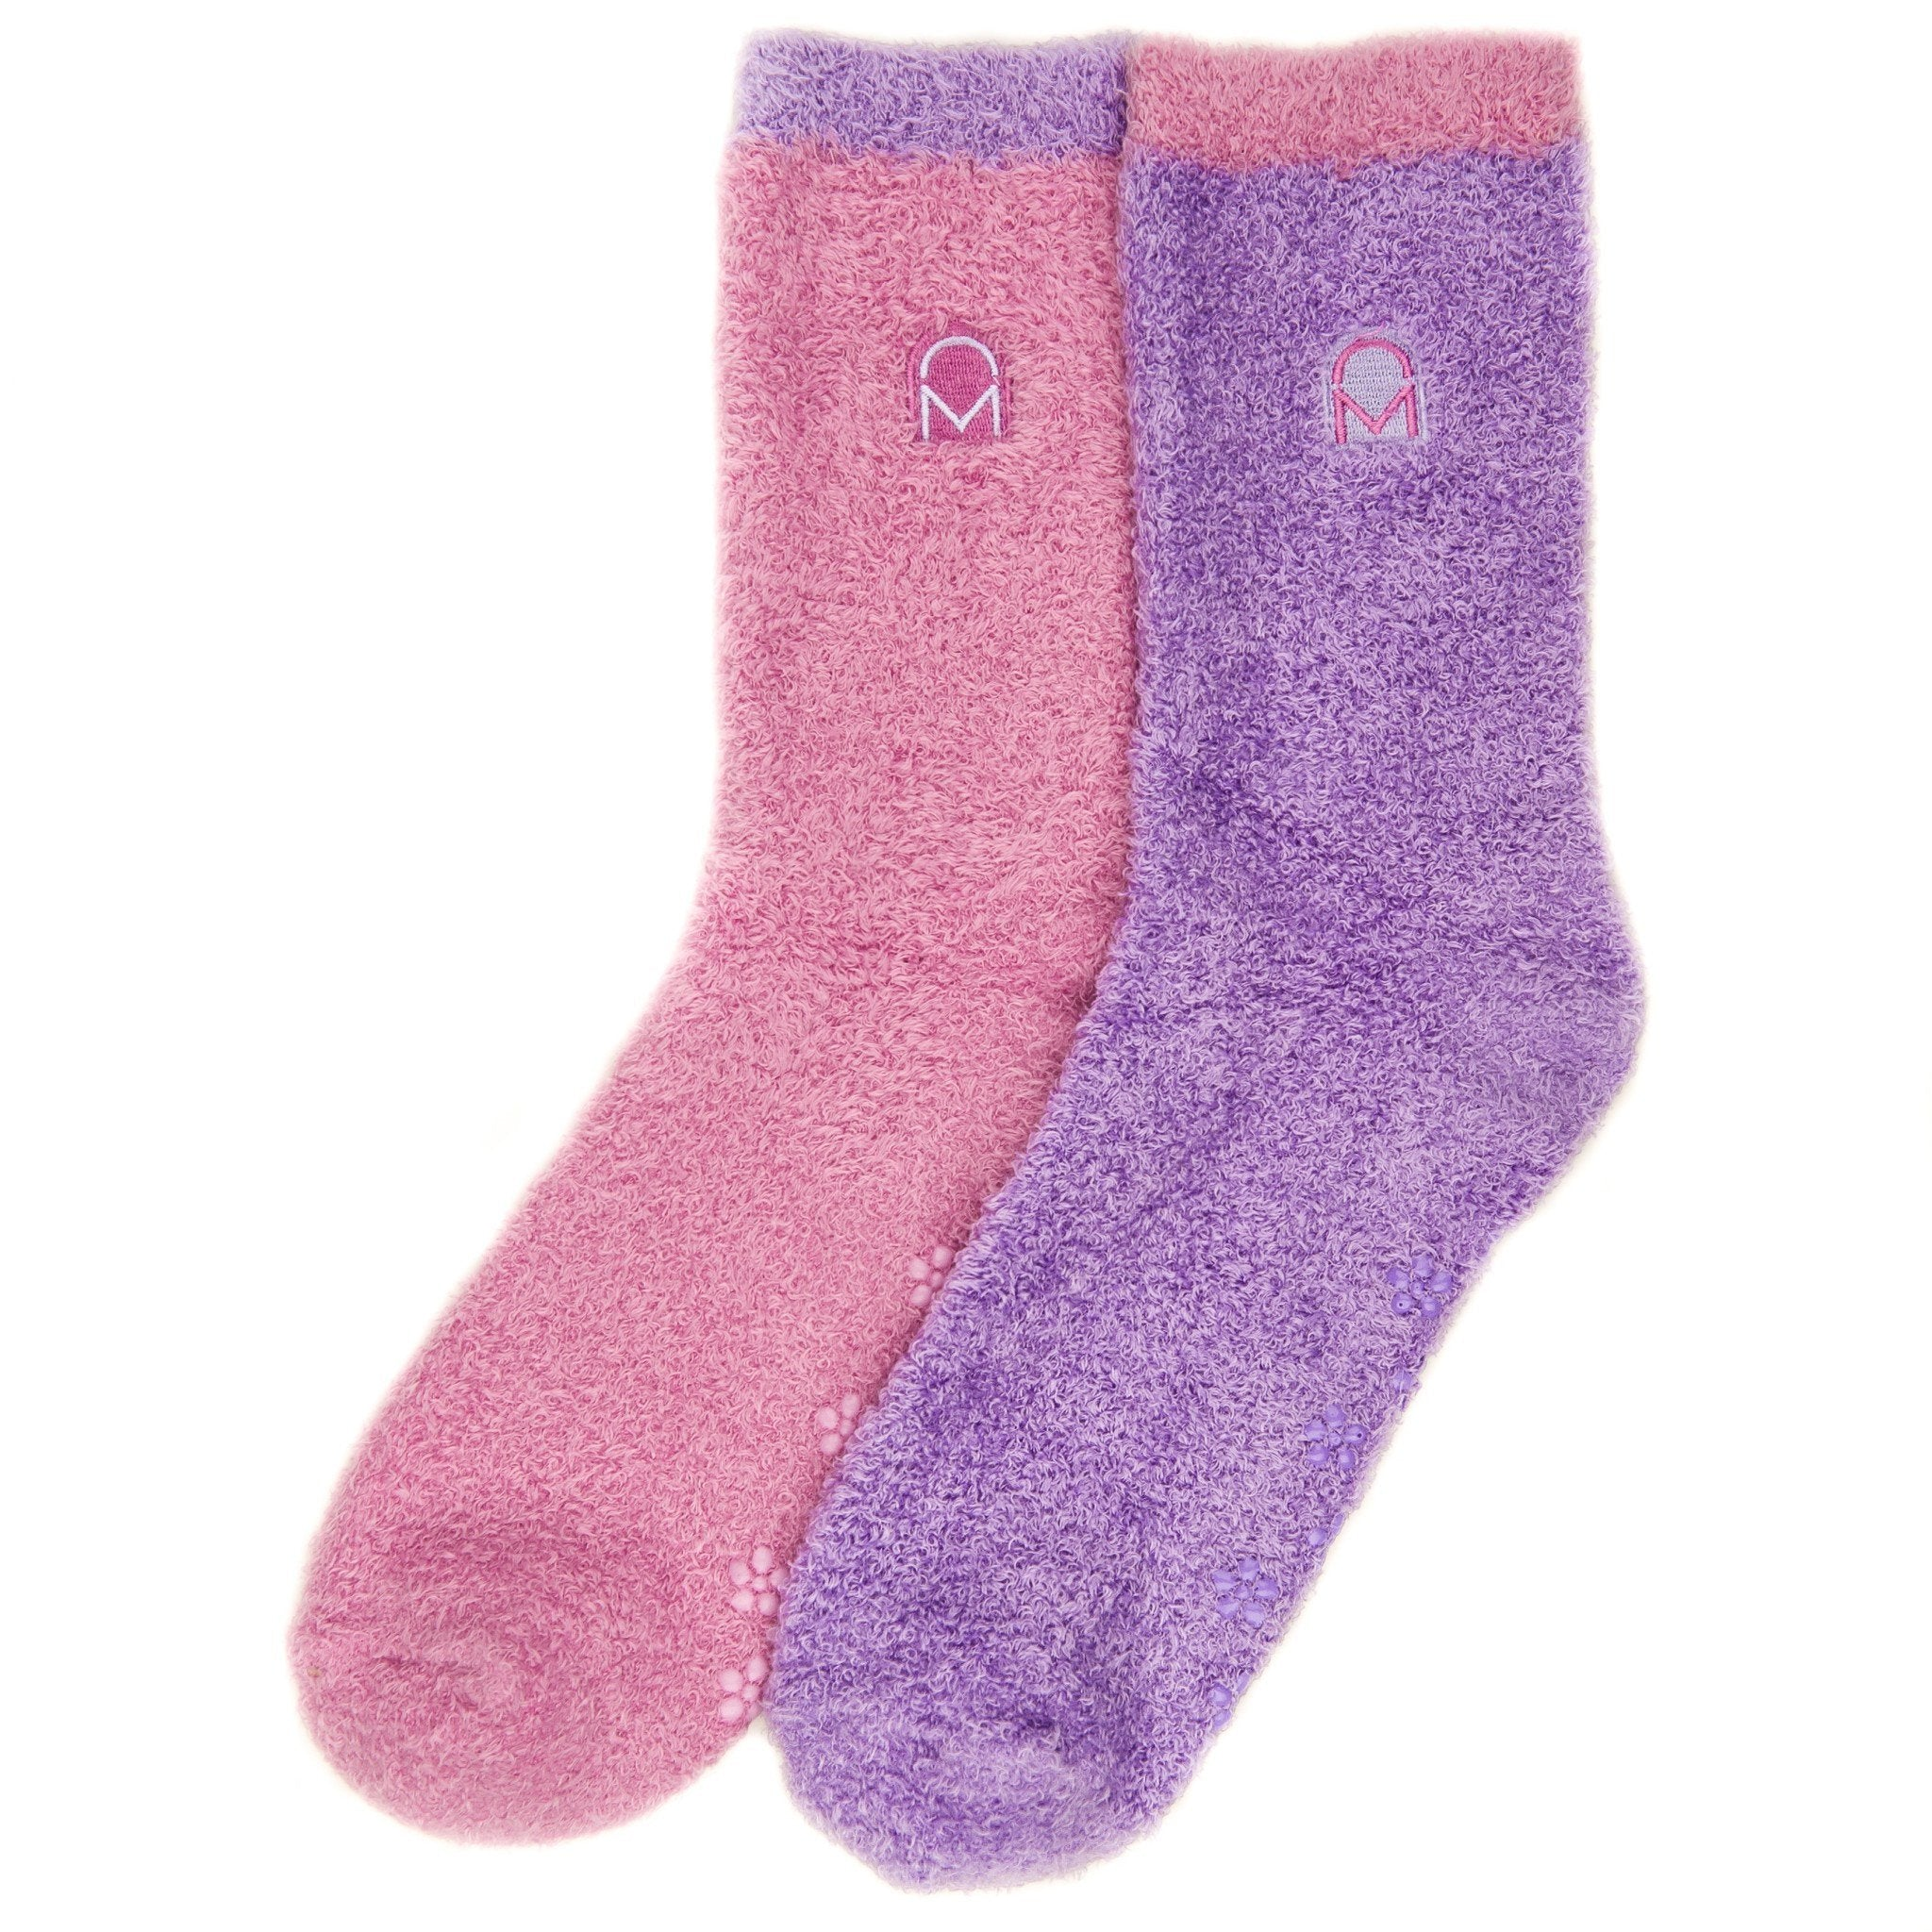 Women's Soft Anti-Skid Winter Feather Socks - 2-Pairs - Set A3